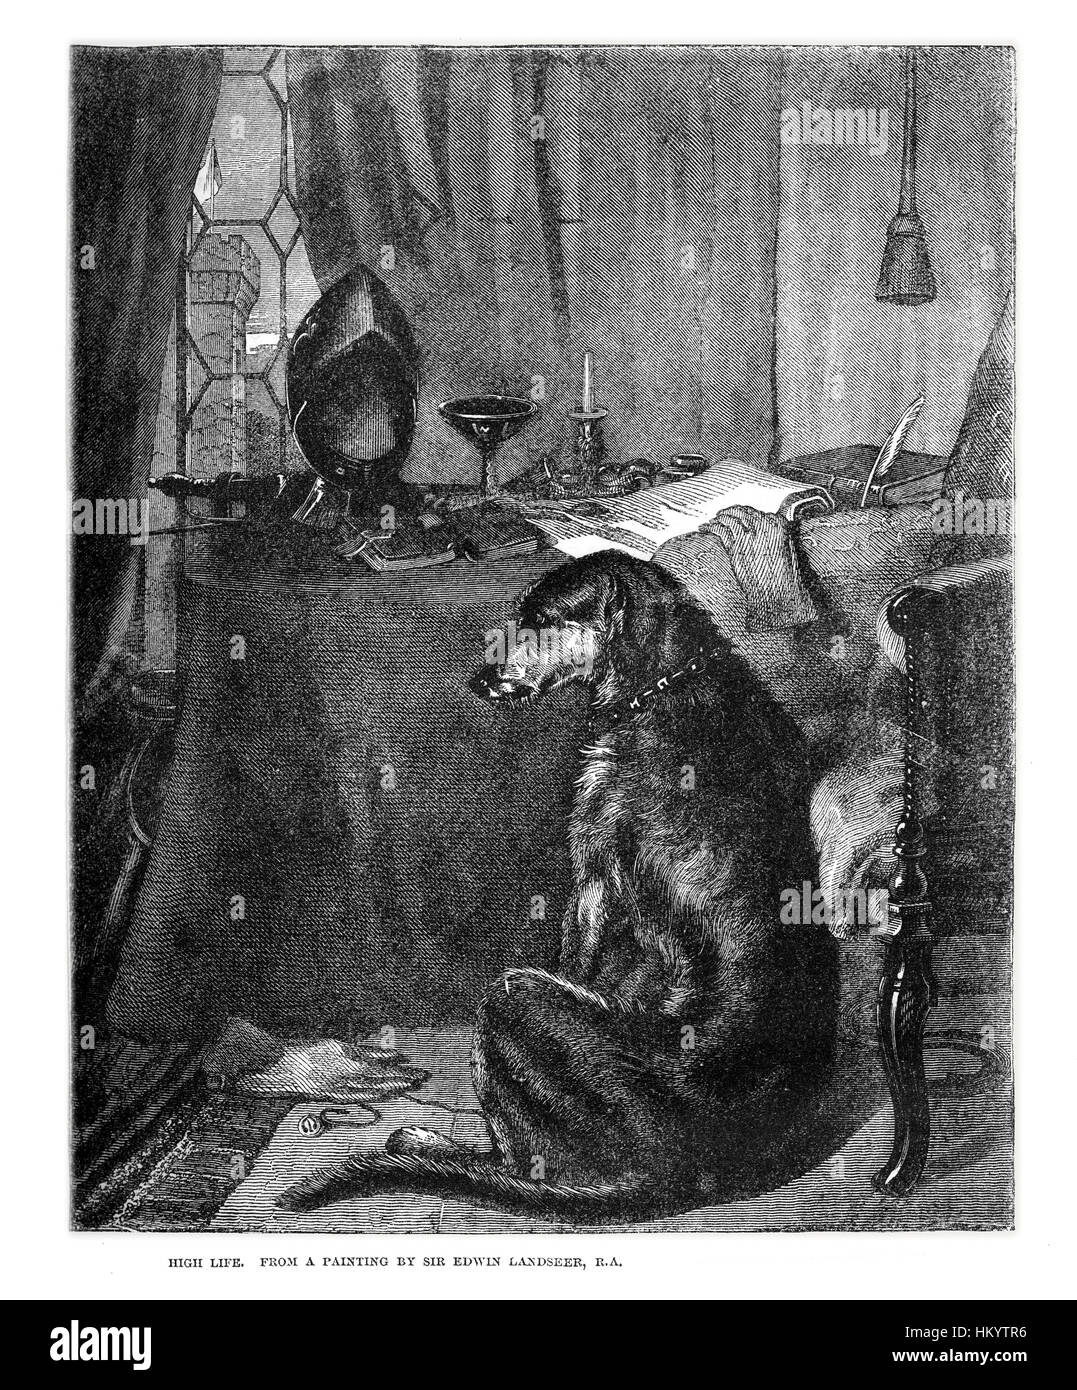 Dog. 19th century Wood Engraving from a painting by Landseer (1802-1873) from 'Popular Natural History', - Stock Image